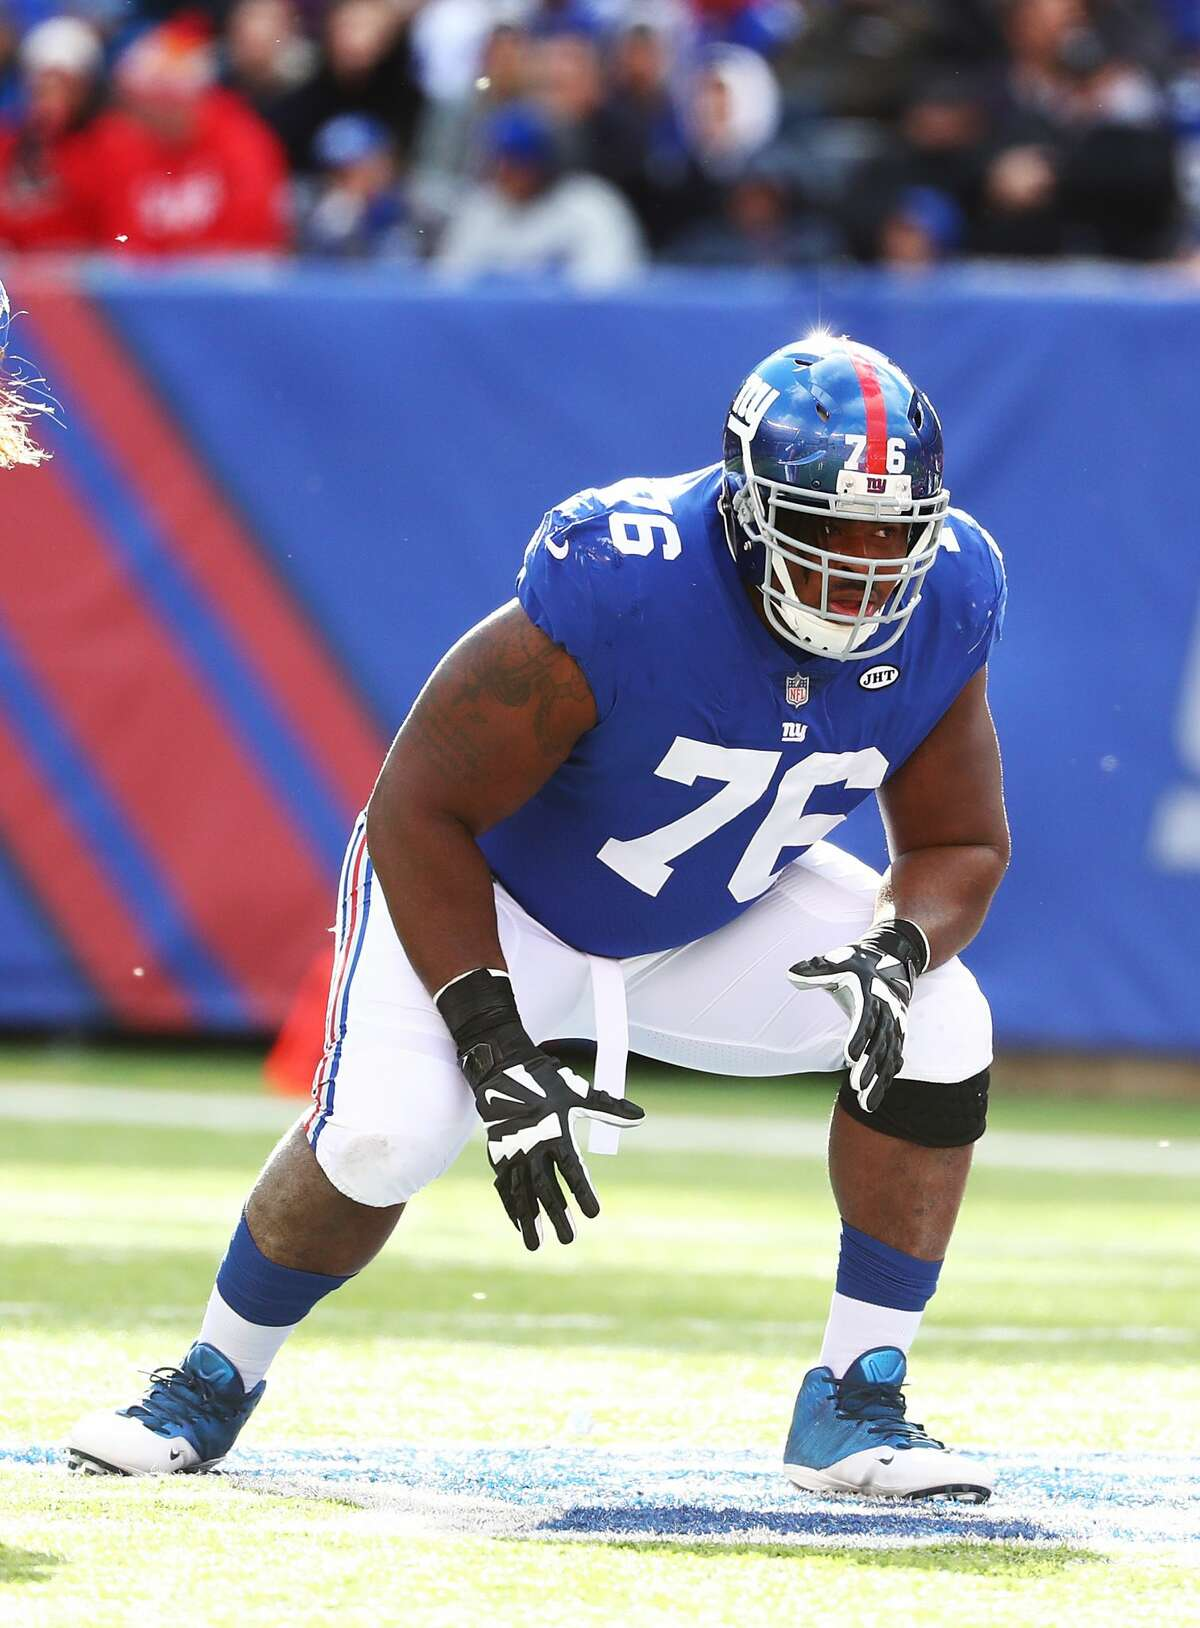 D.J. Fluker #76 of the New York Giants in action against the Kansas City Chiefs during their game at MetLife Stadium on Nov. 19, 2017 in East Rutherford, New Jersey.